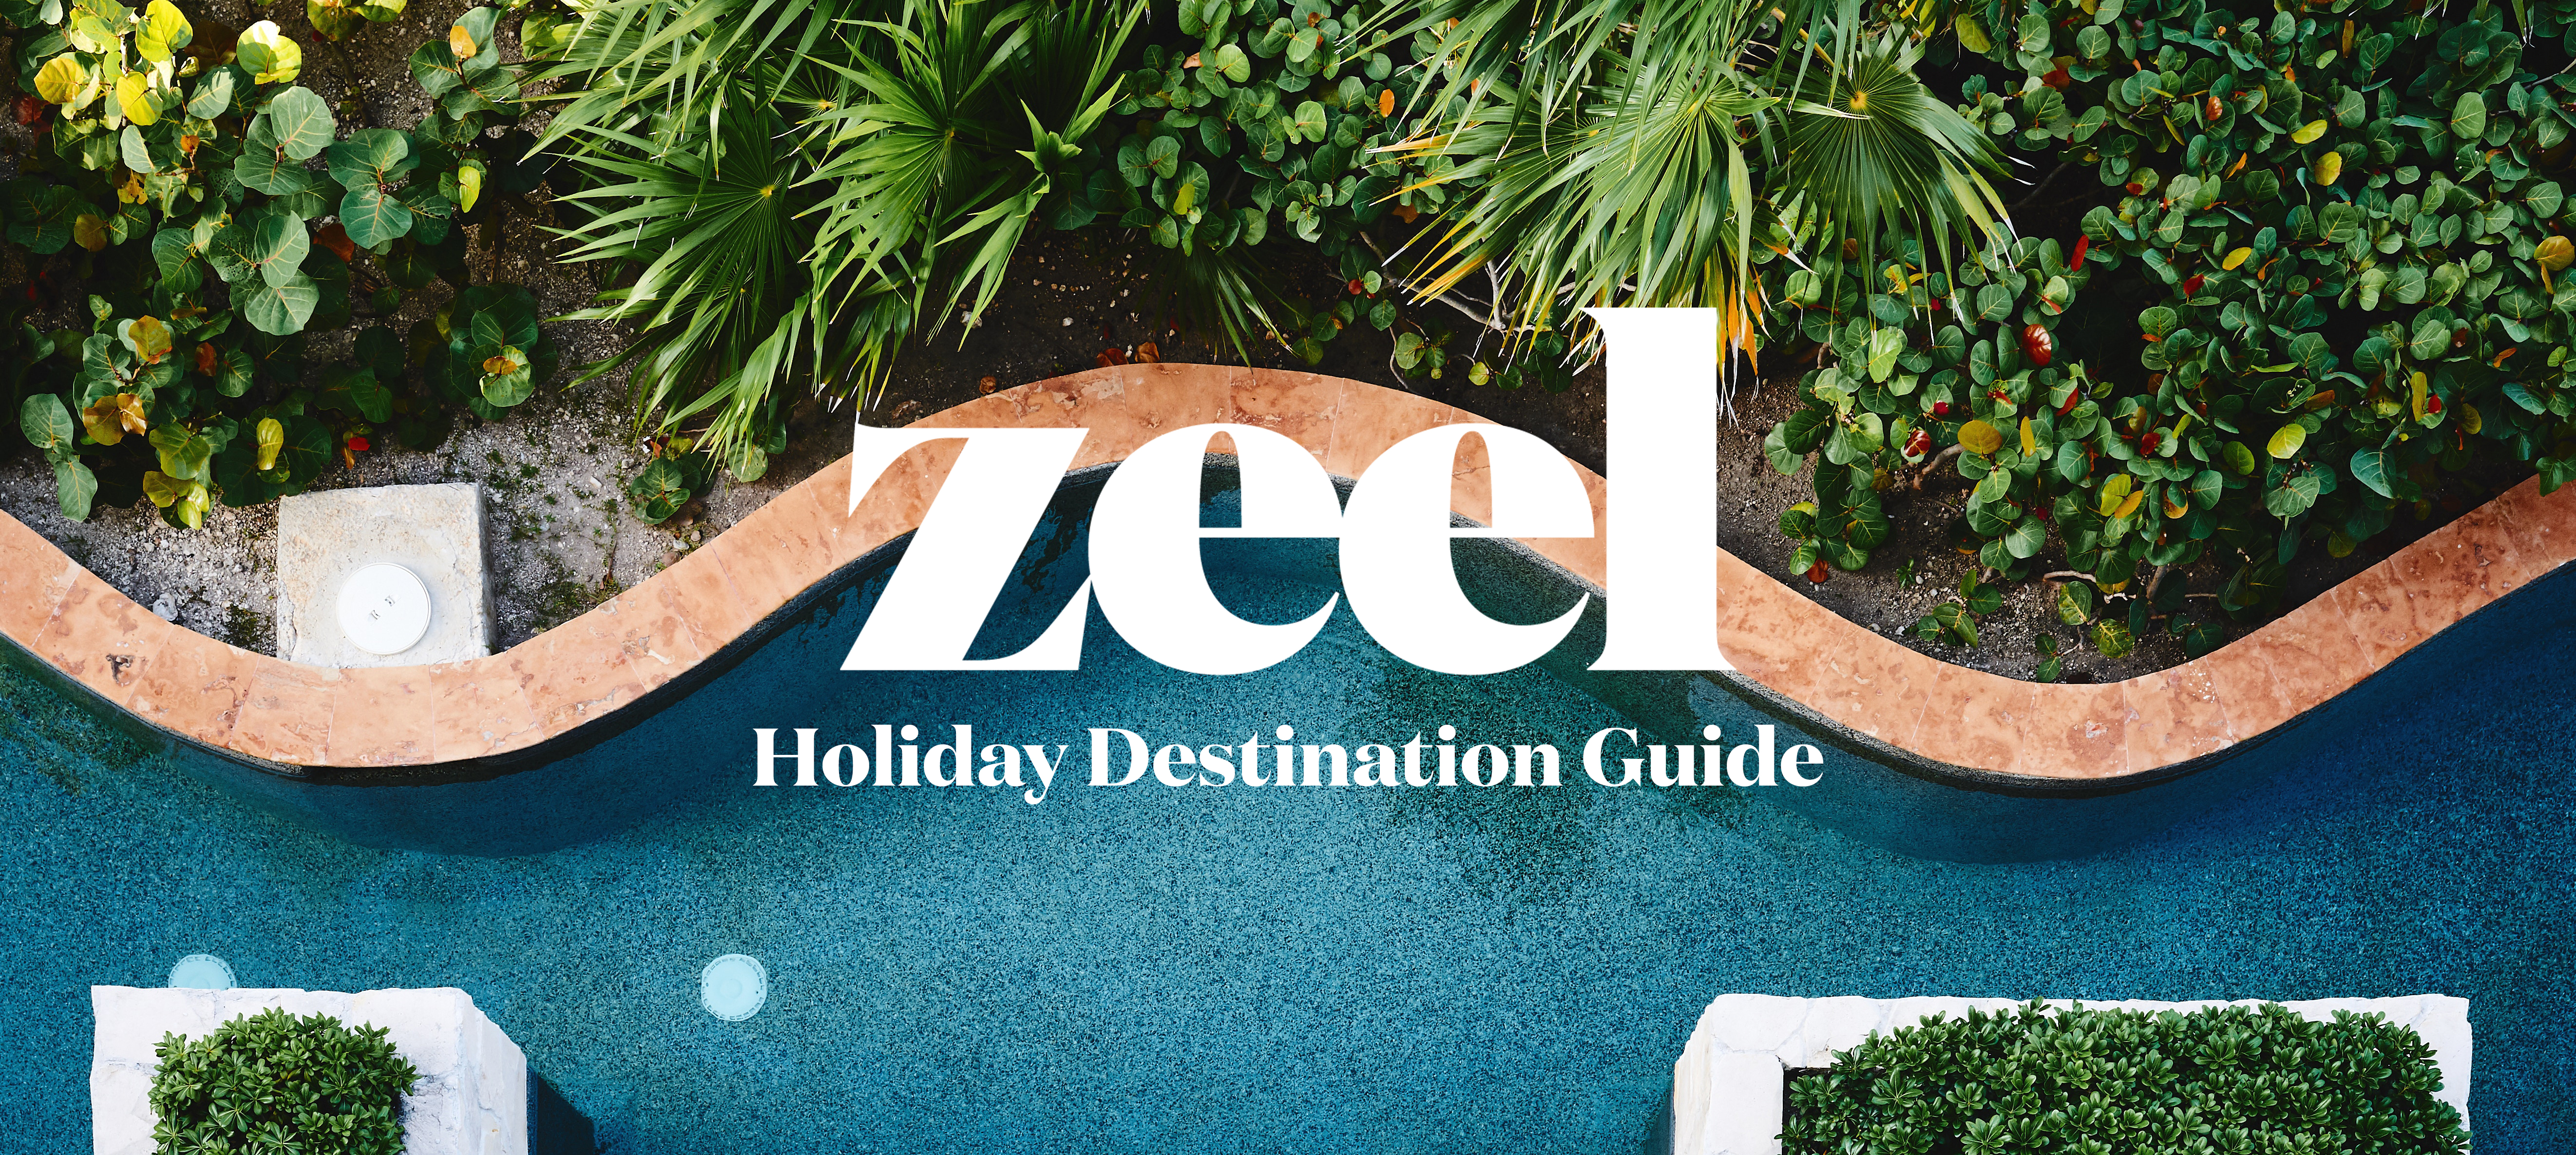 Zeel Holiday Destination Guide